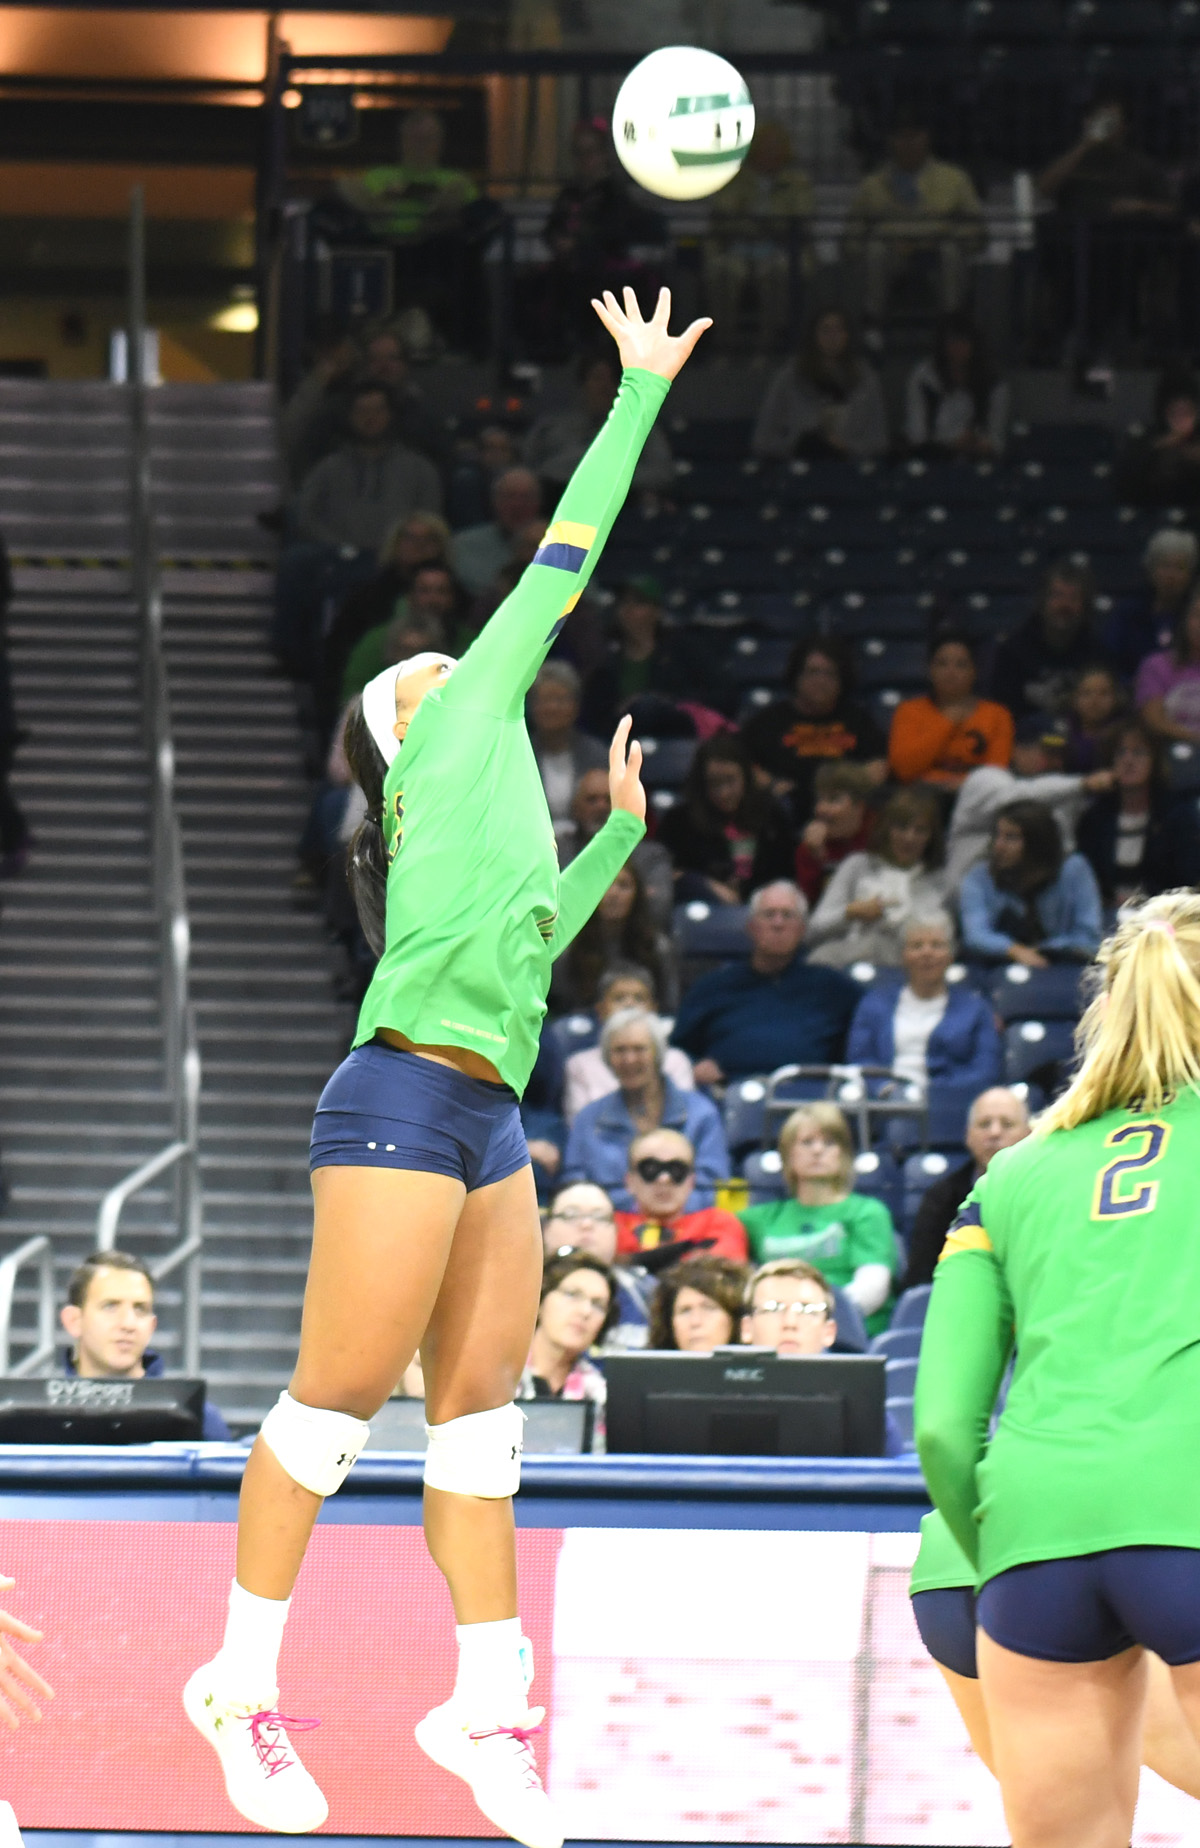 Notre Dame led by Caroline Meuth en route to two wins in Golden Dome Invitational